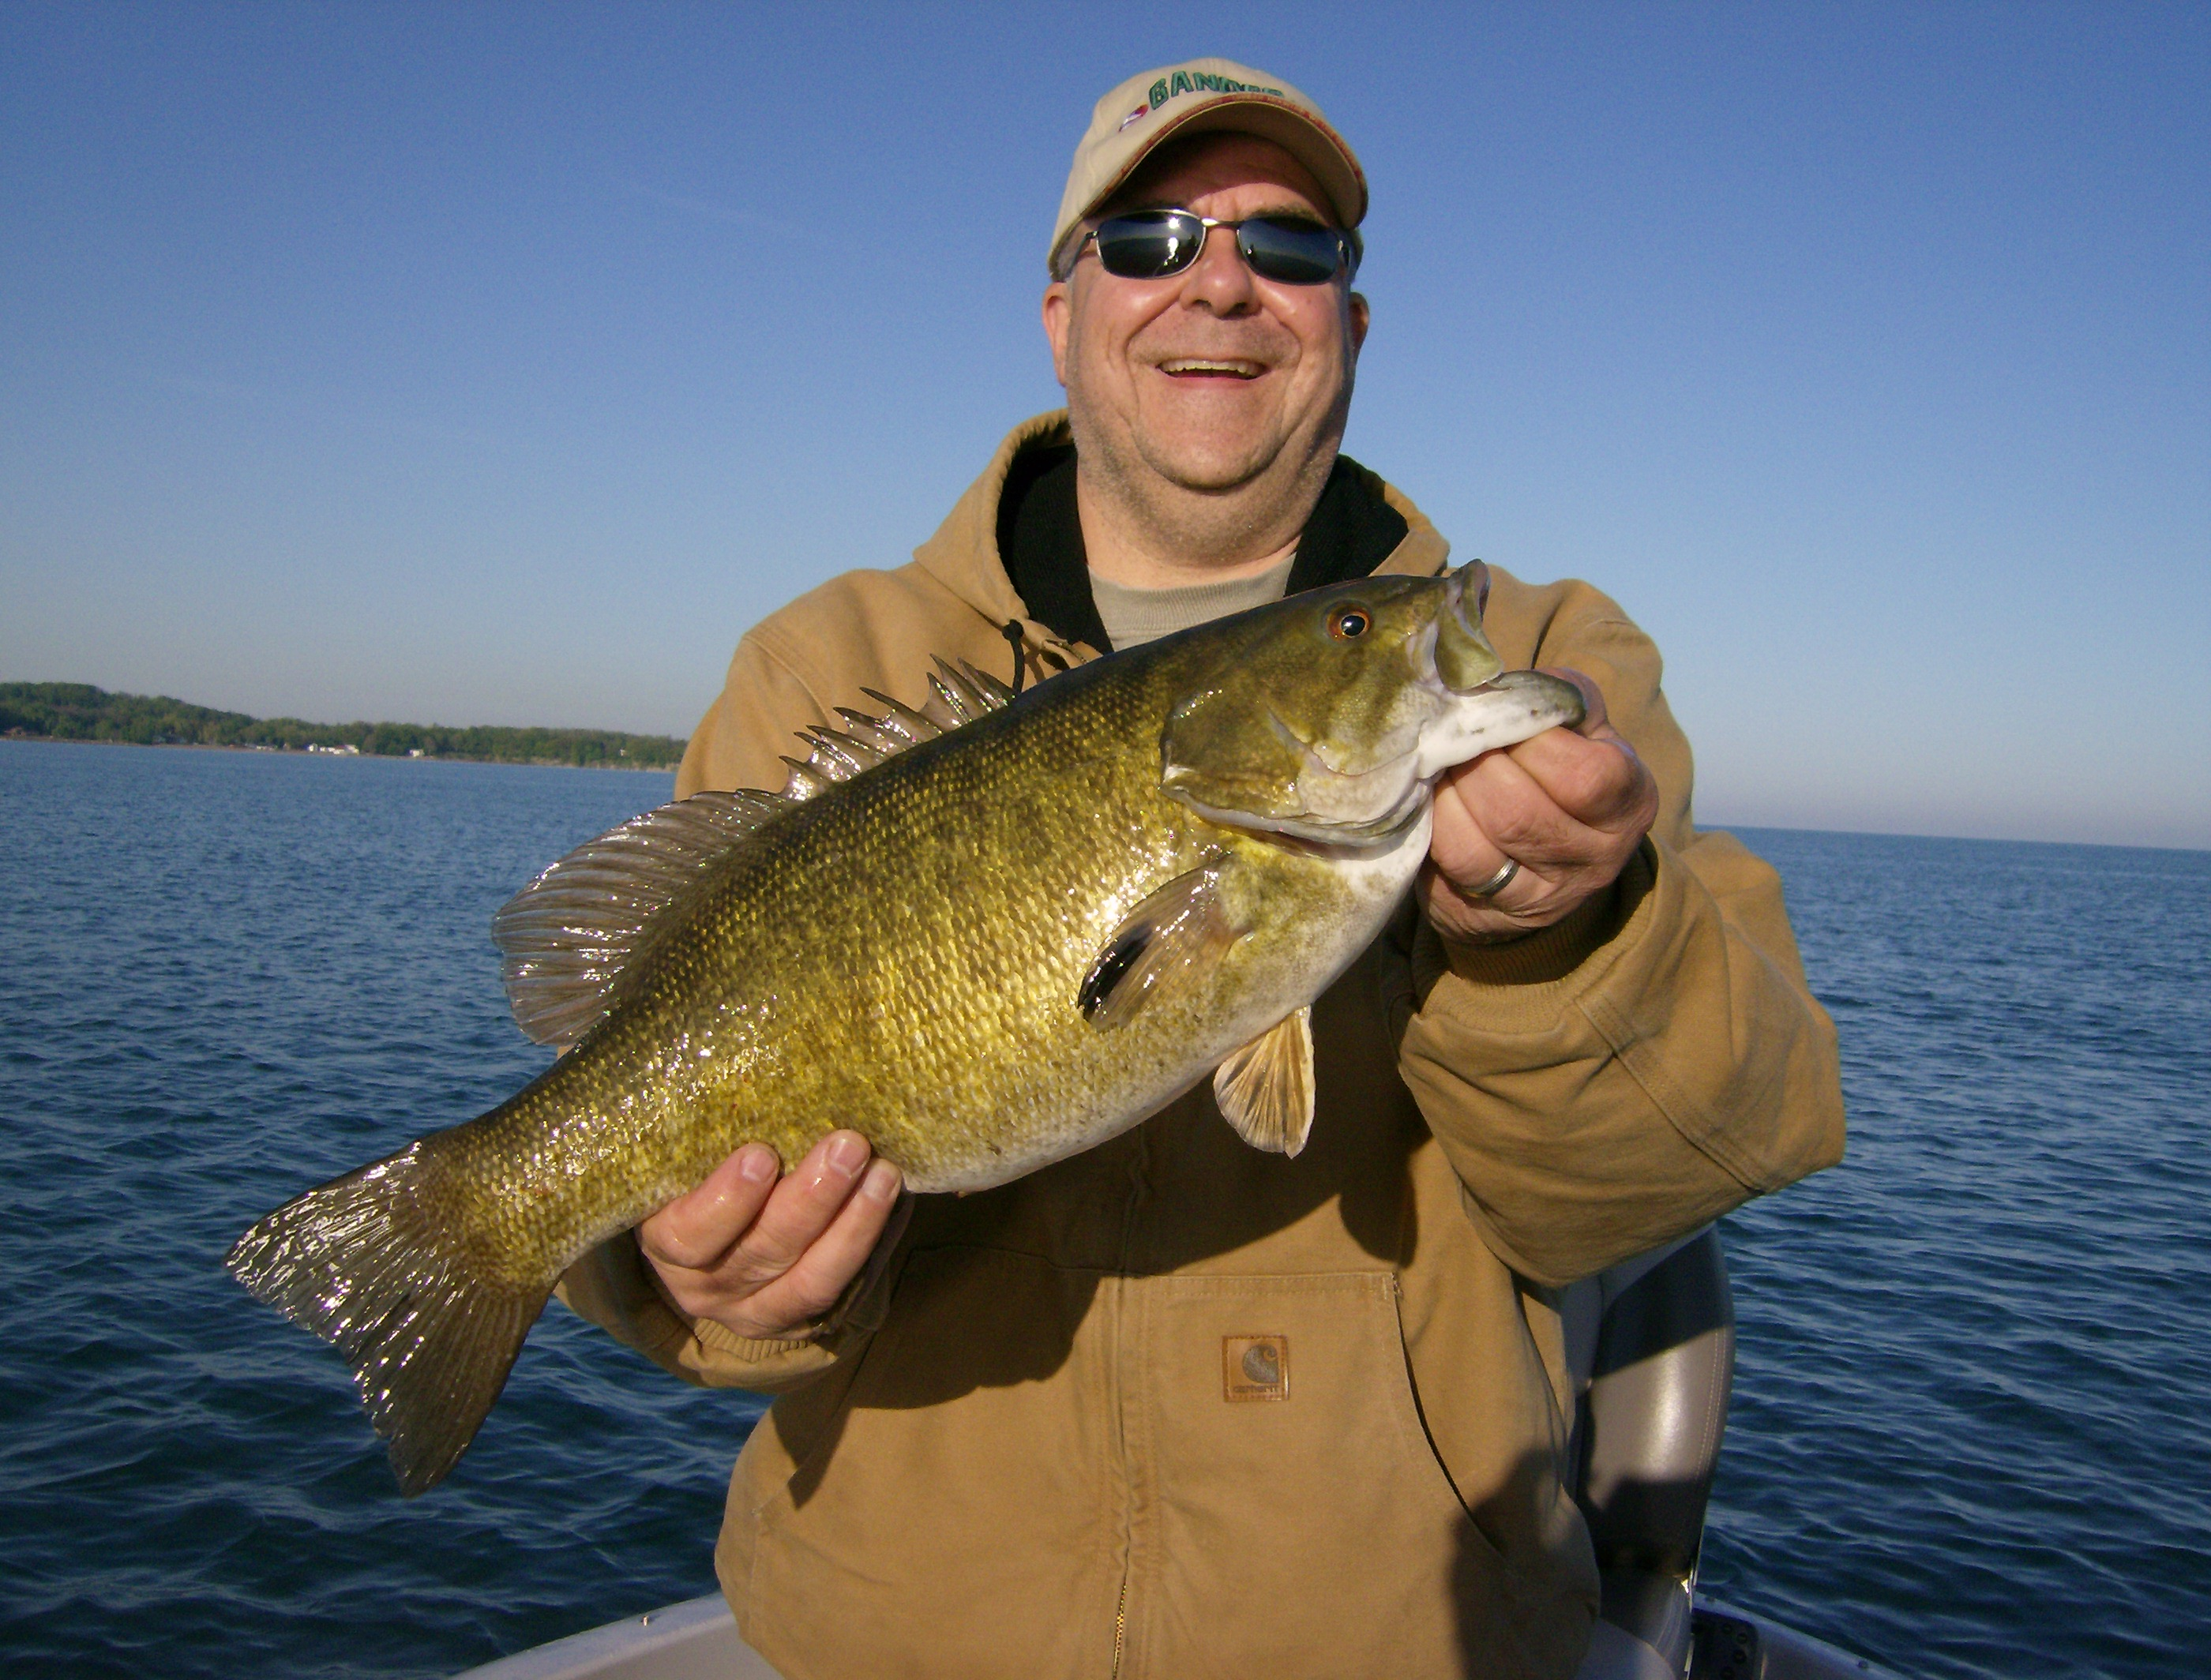 Happy Customer with an early season Lake Erie 5lb smallmouth bass